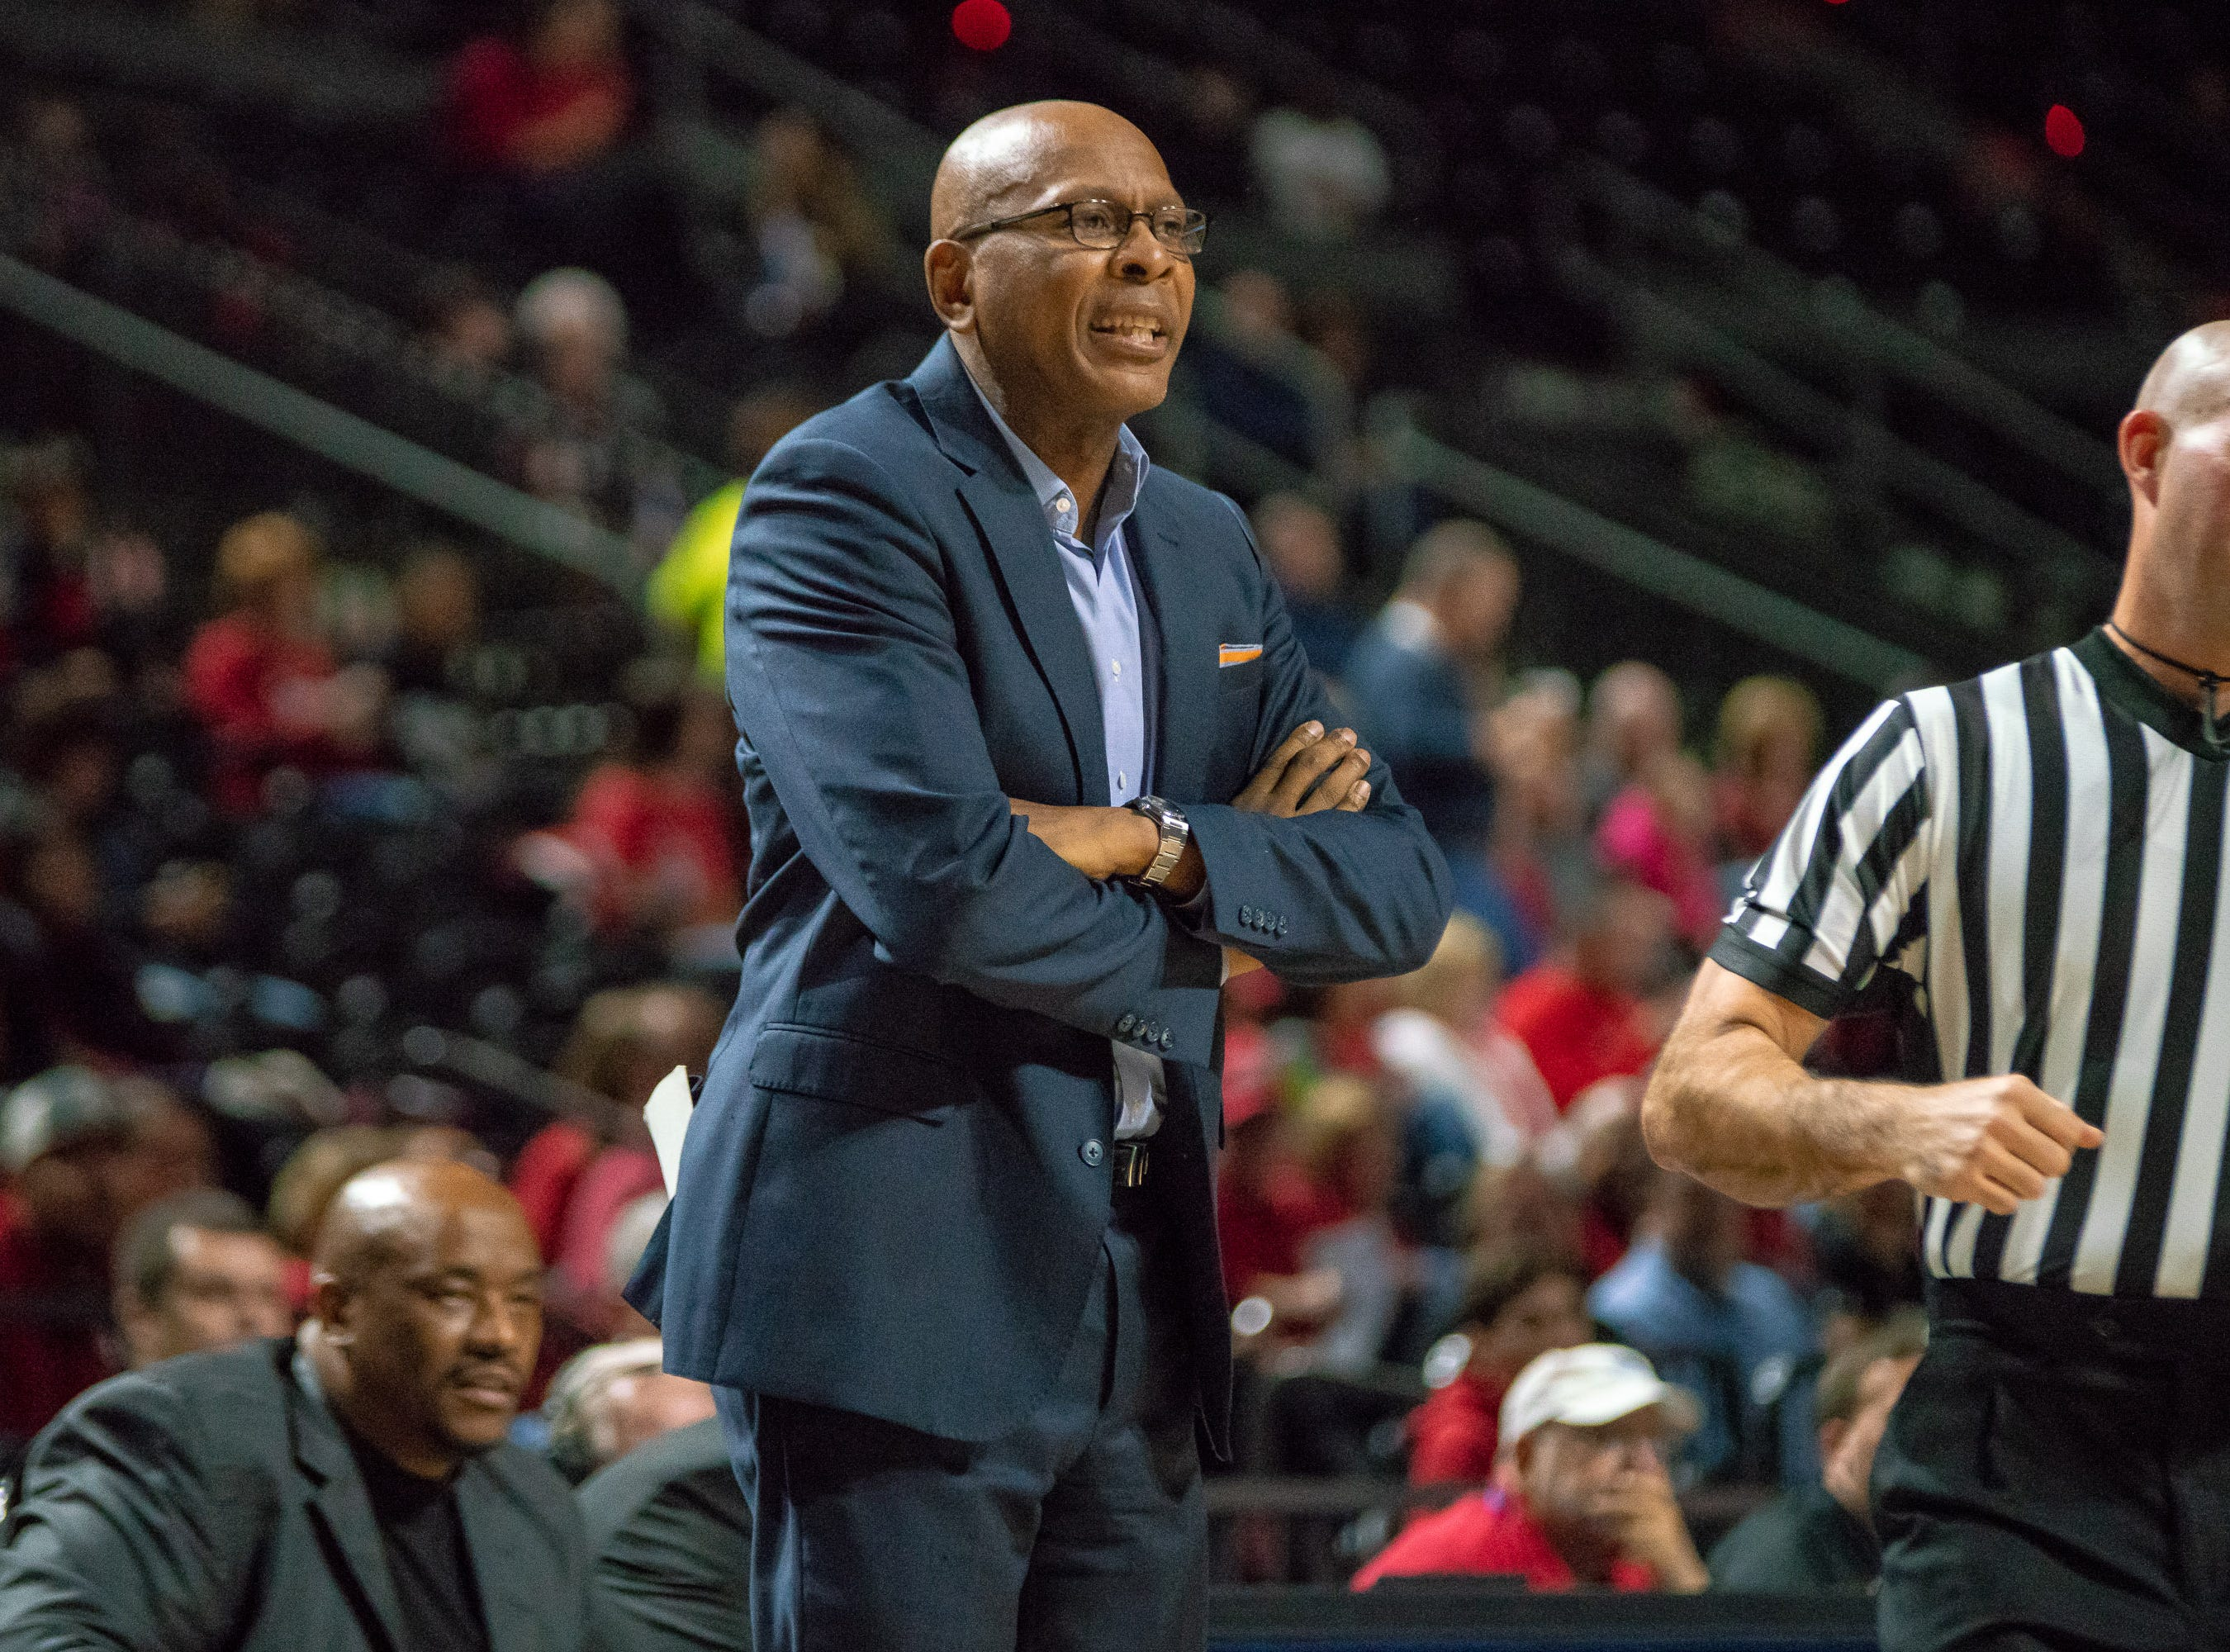 Little Rock's head coach Darrell Walker talks to his players from the sideline as the Ragin' Cajuns take on the Little Rock Trojans at the Cajundome on January 5, 2019.